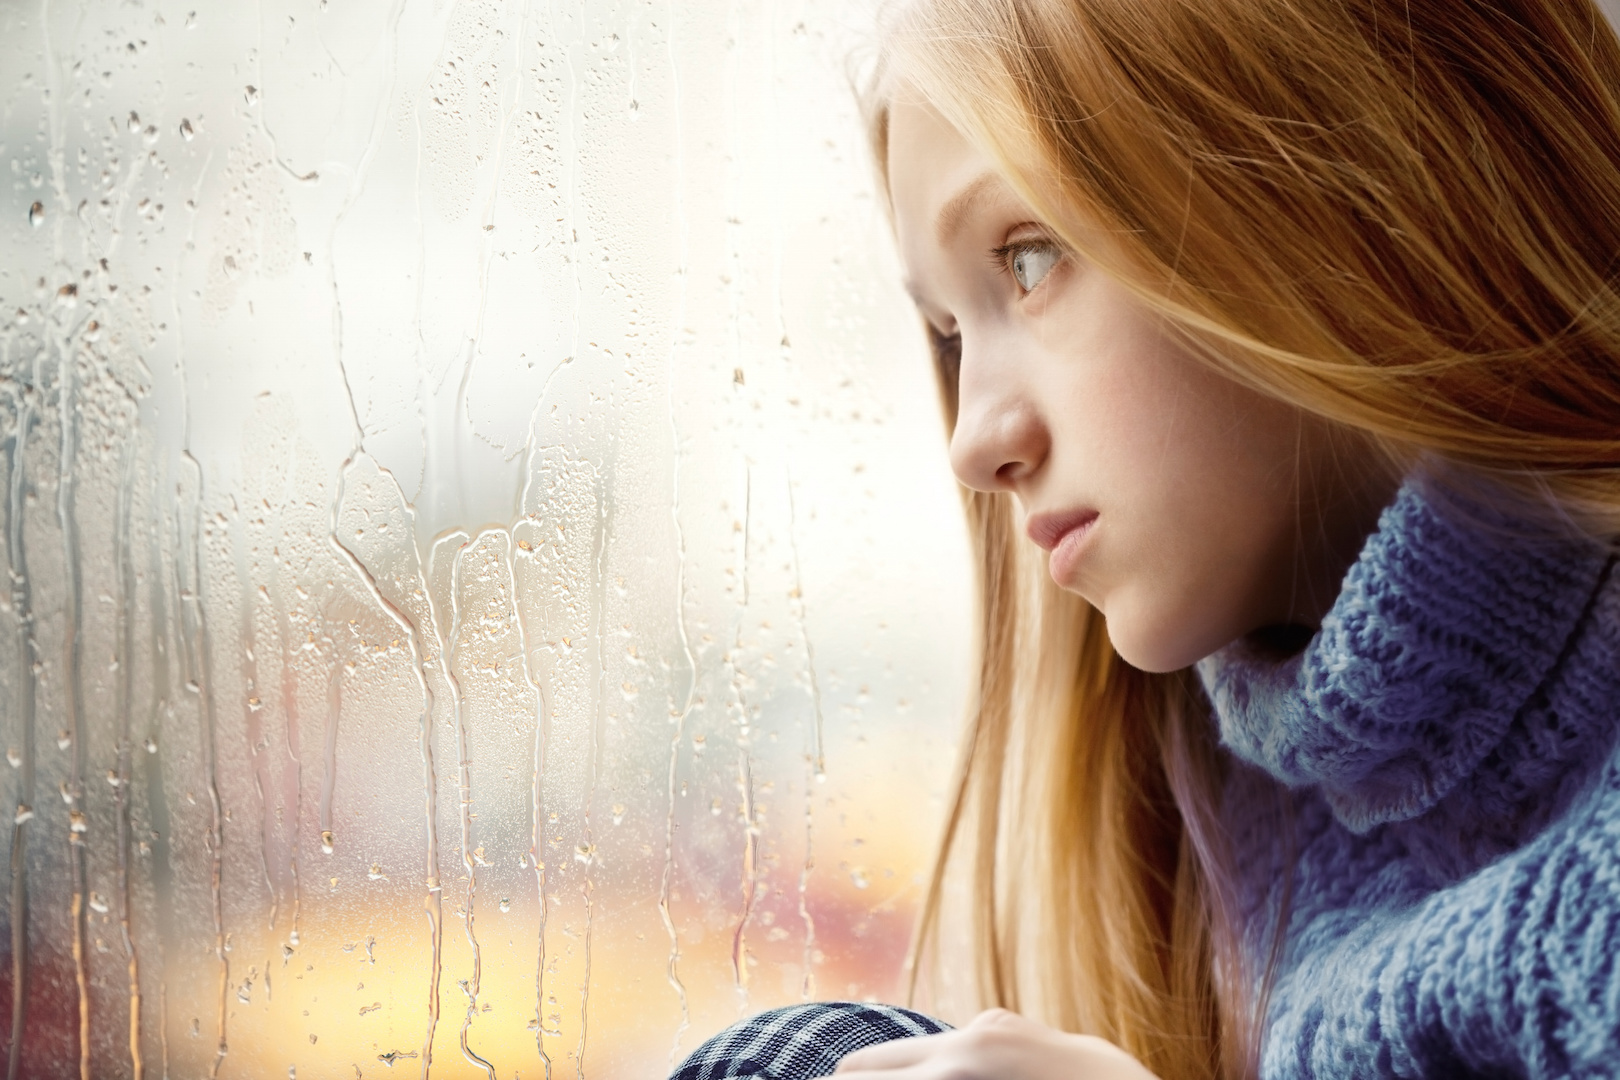 Rainy Day: Girl looking through the Window